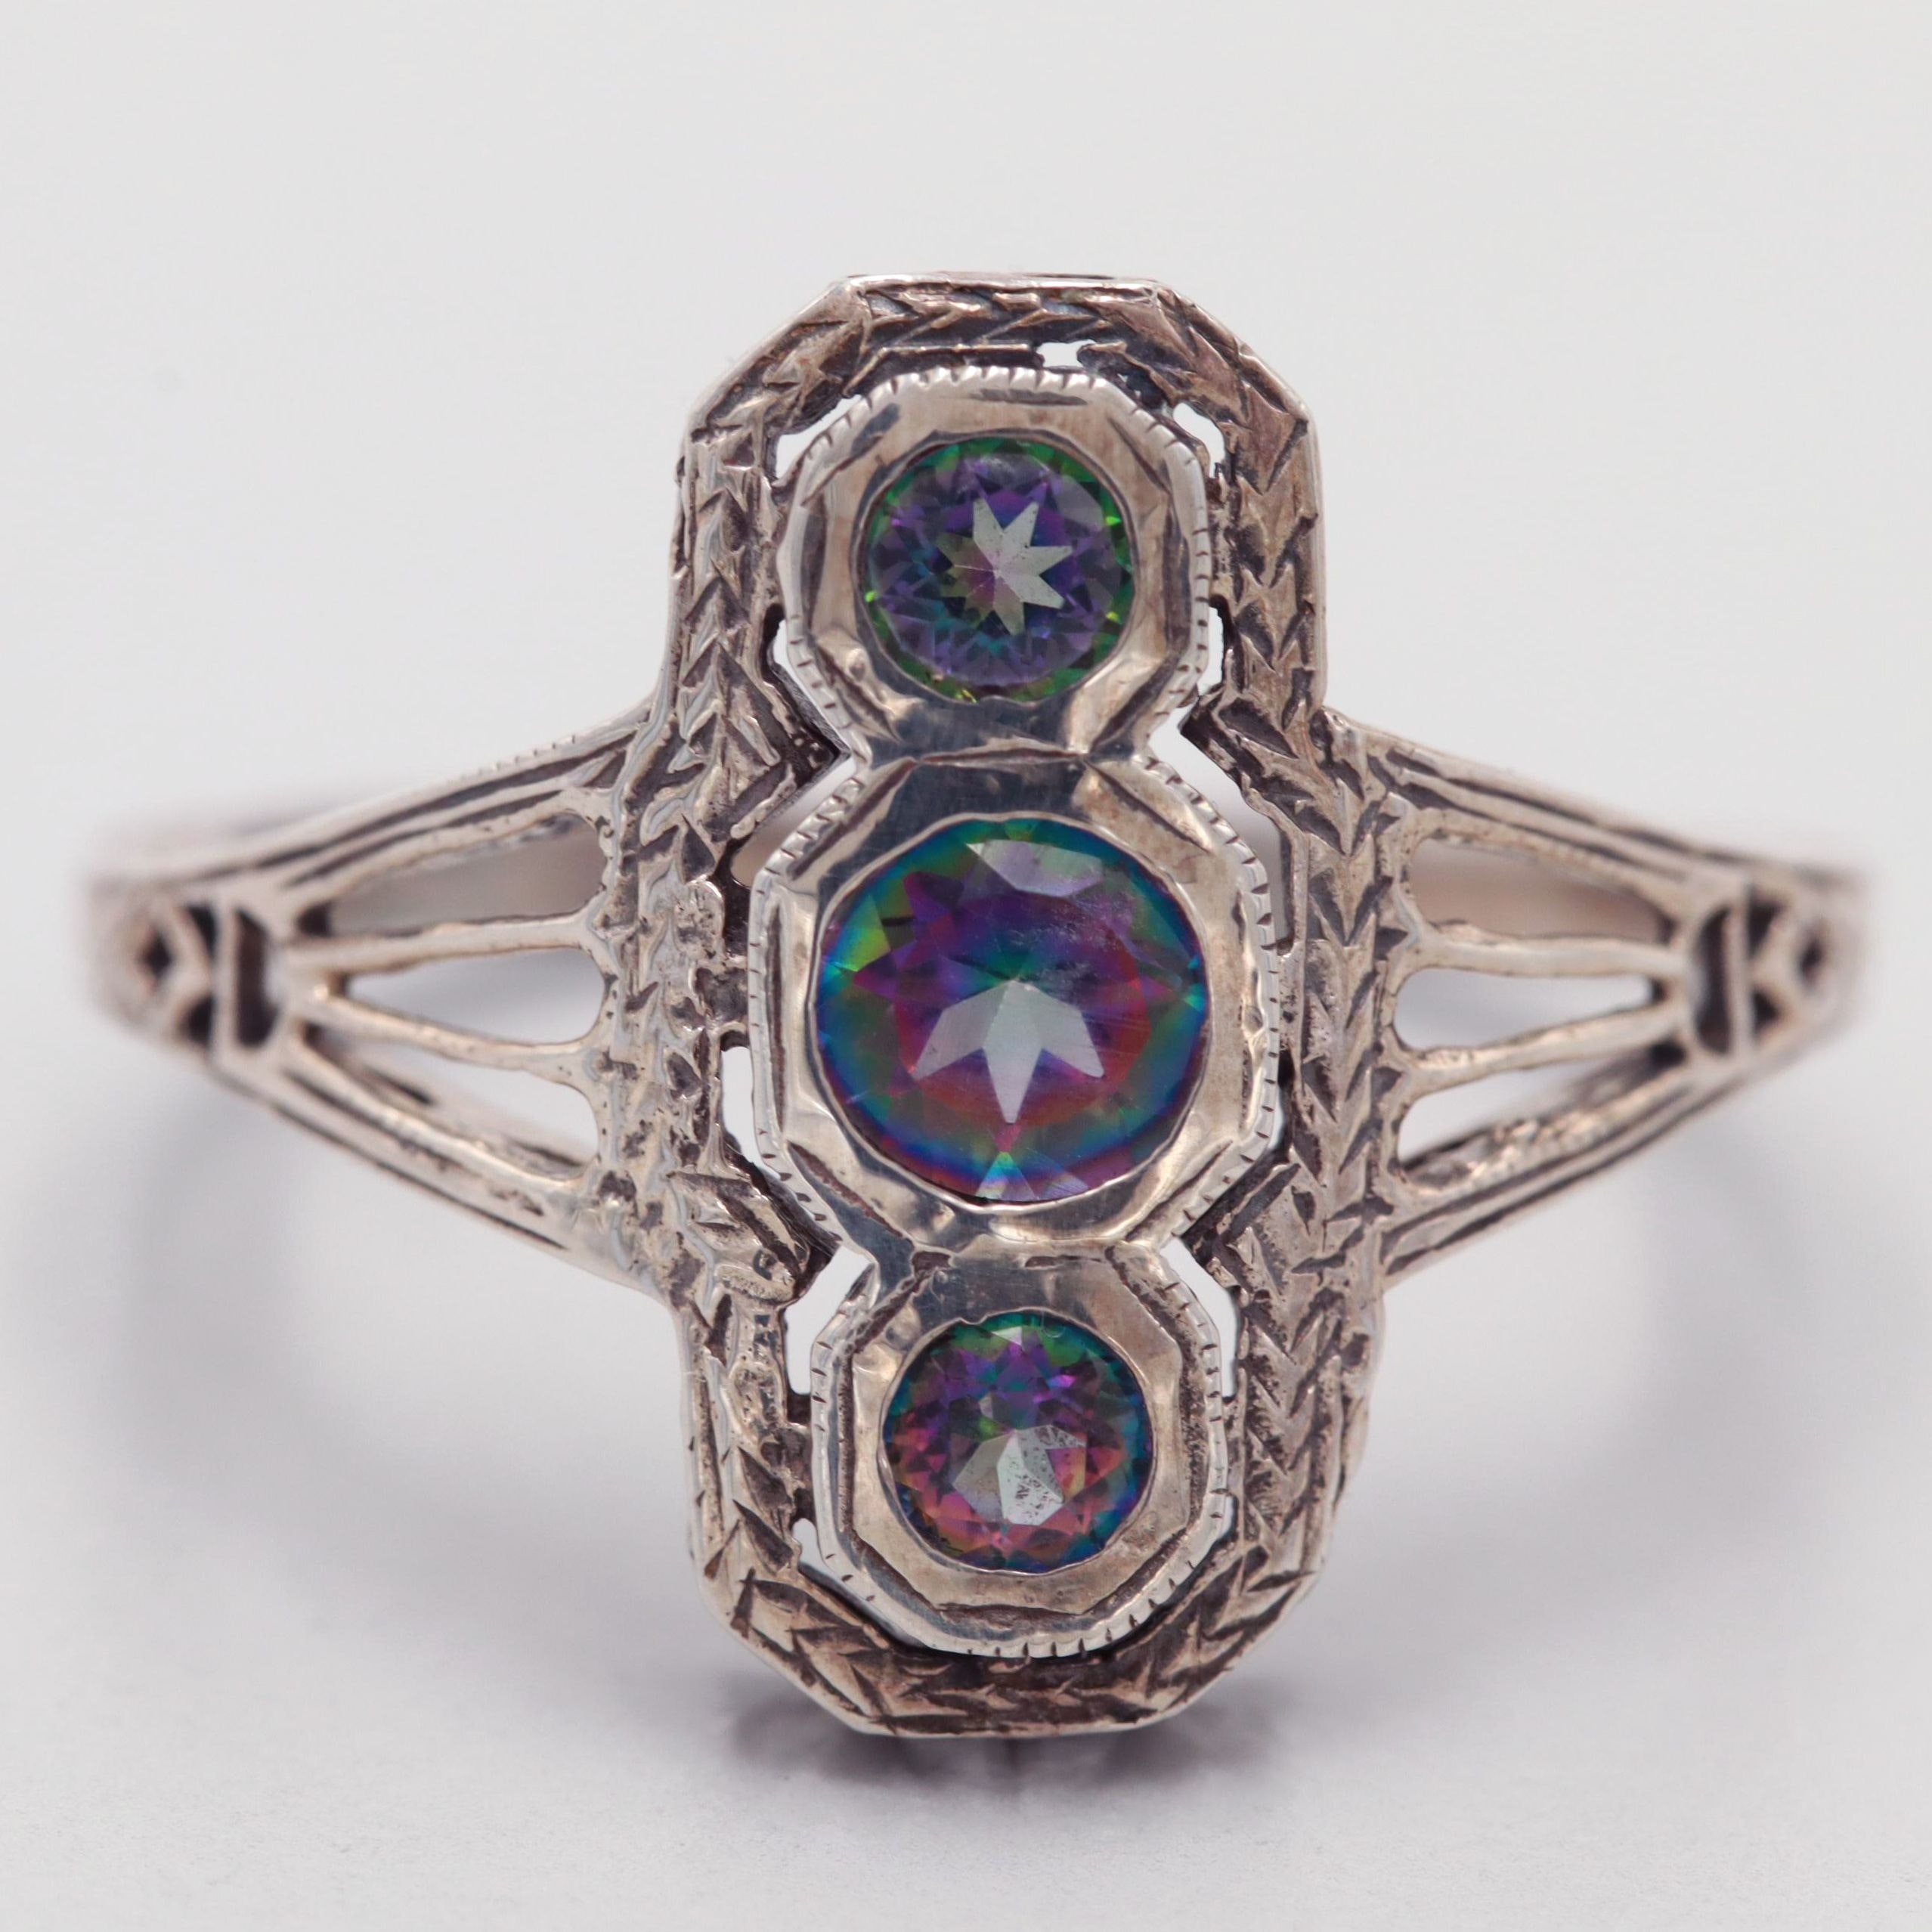 Vintage Sterling Silver Quartz Ring with Filigree Accents